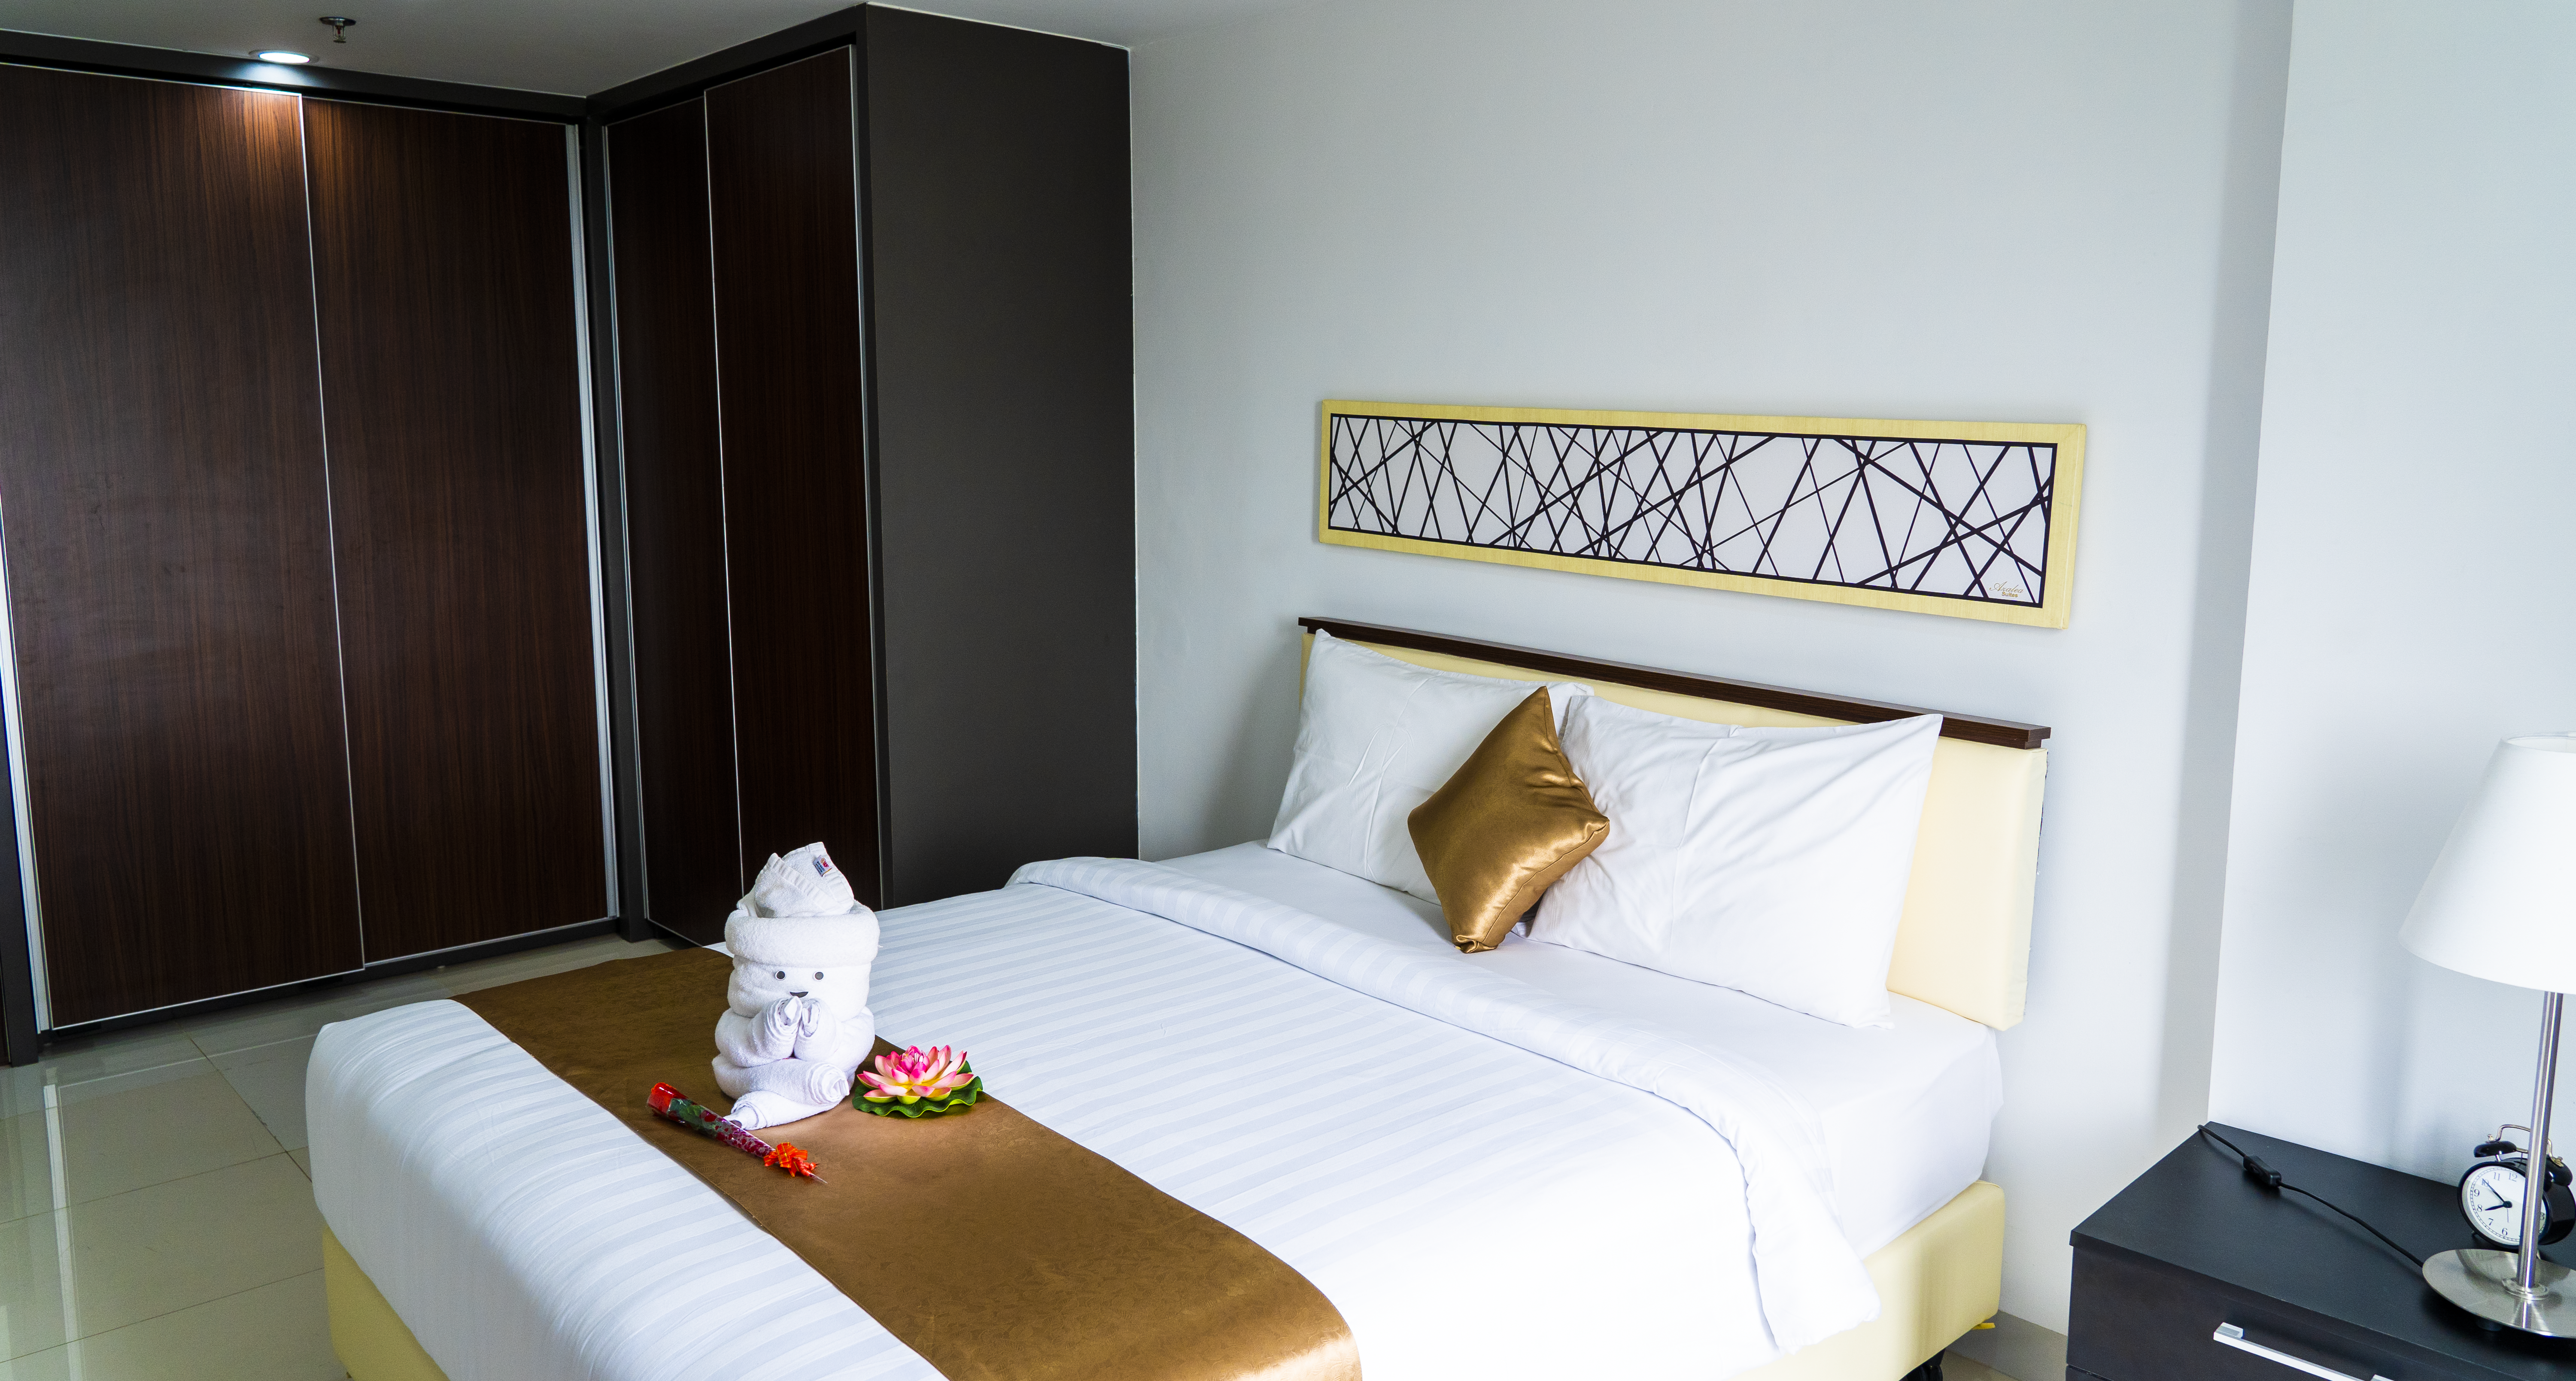 Azalea Suites Cikarang Gallery Two Bedroom Suites(66m²)